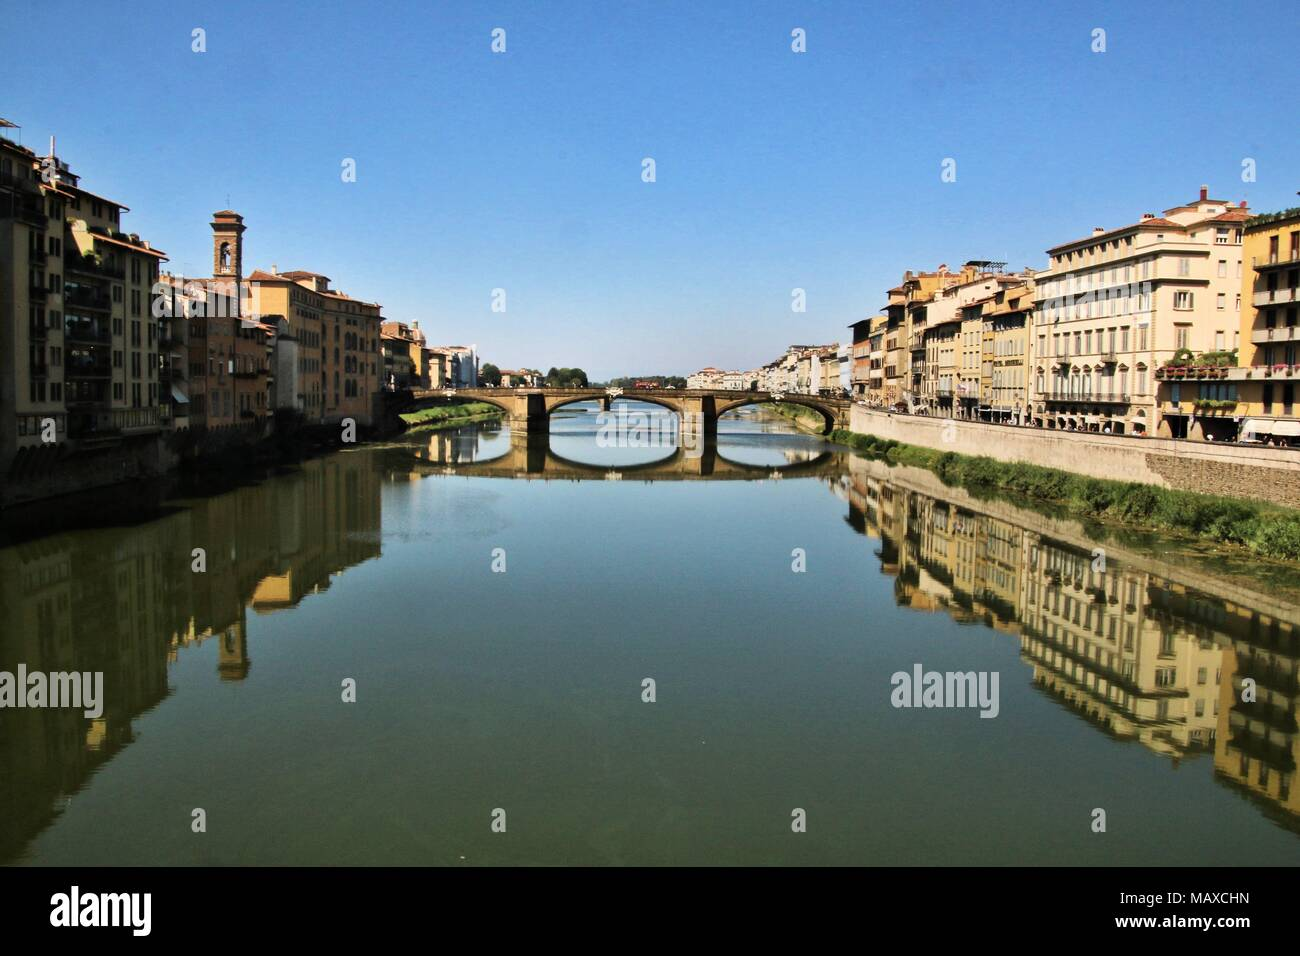 A view of a bridge in Florence - Stock Image